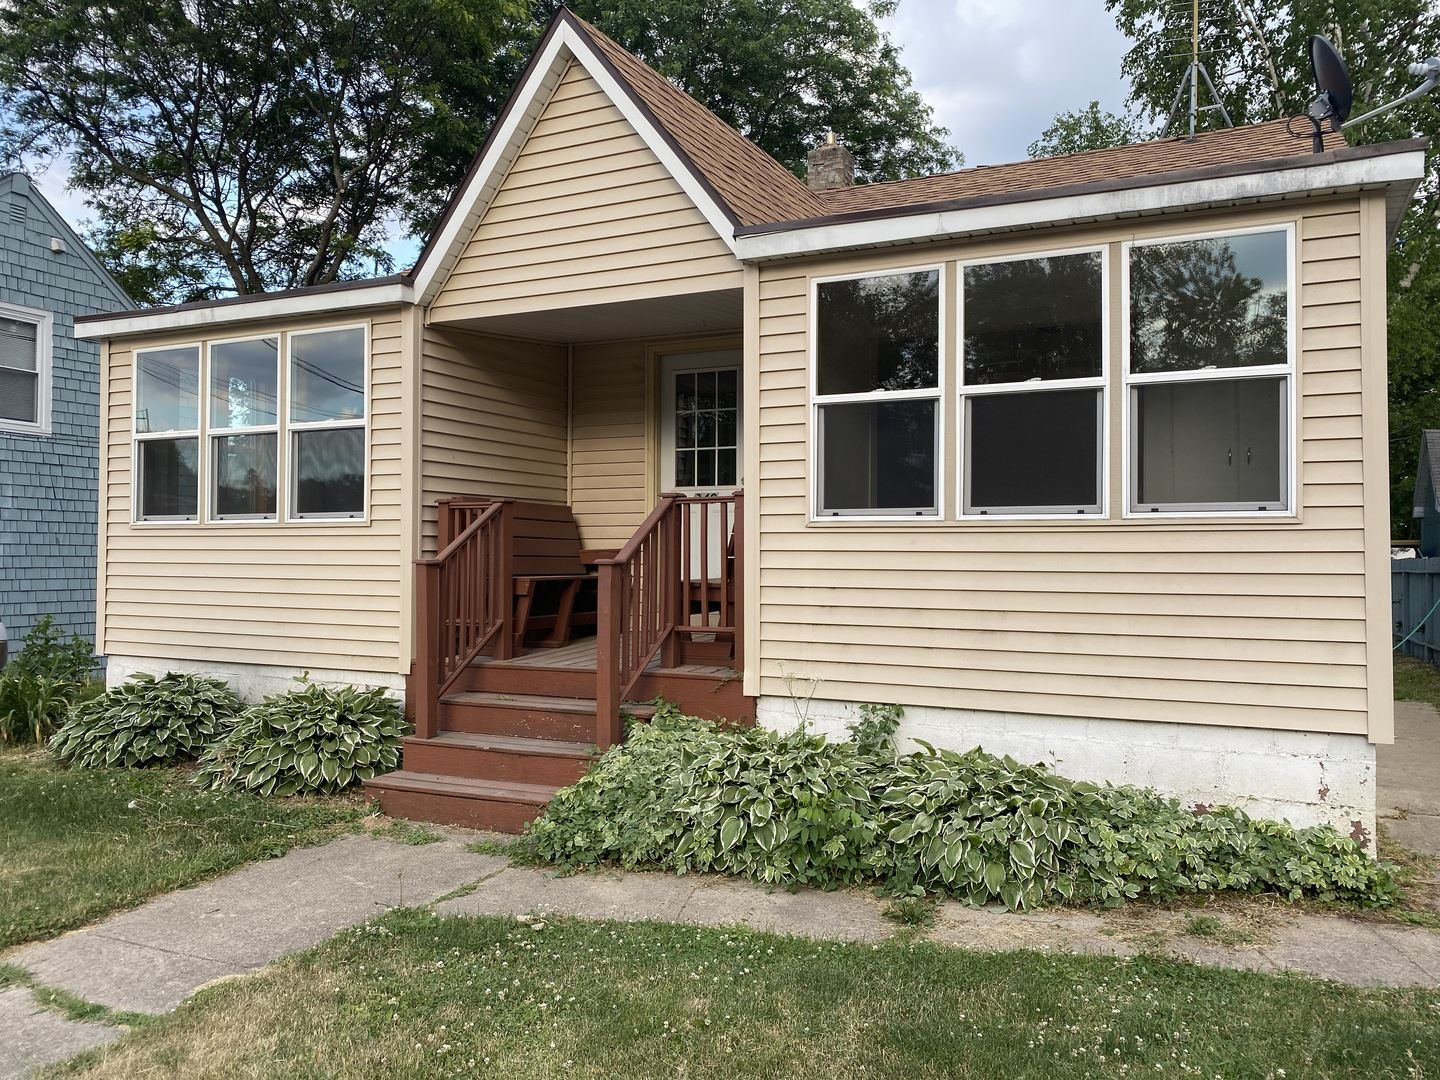 349 S Mchenry Avenue, Crystal Lake, IL 60014 - #: 11116487